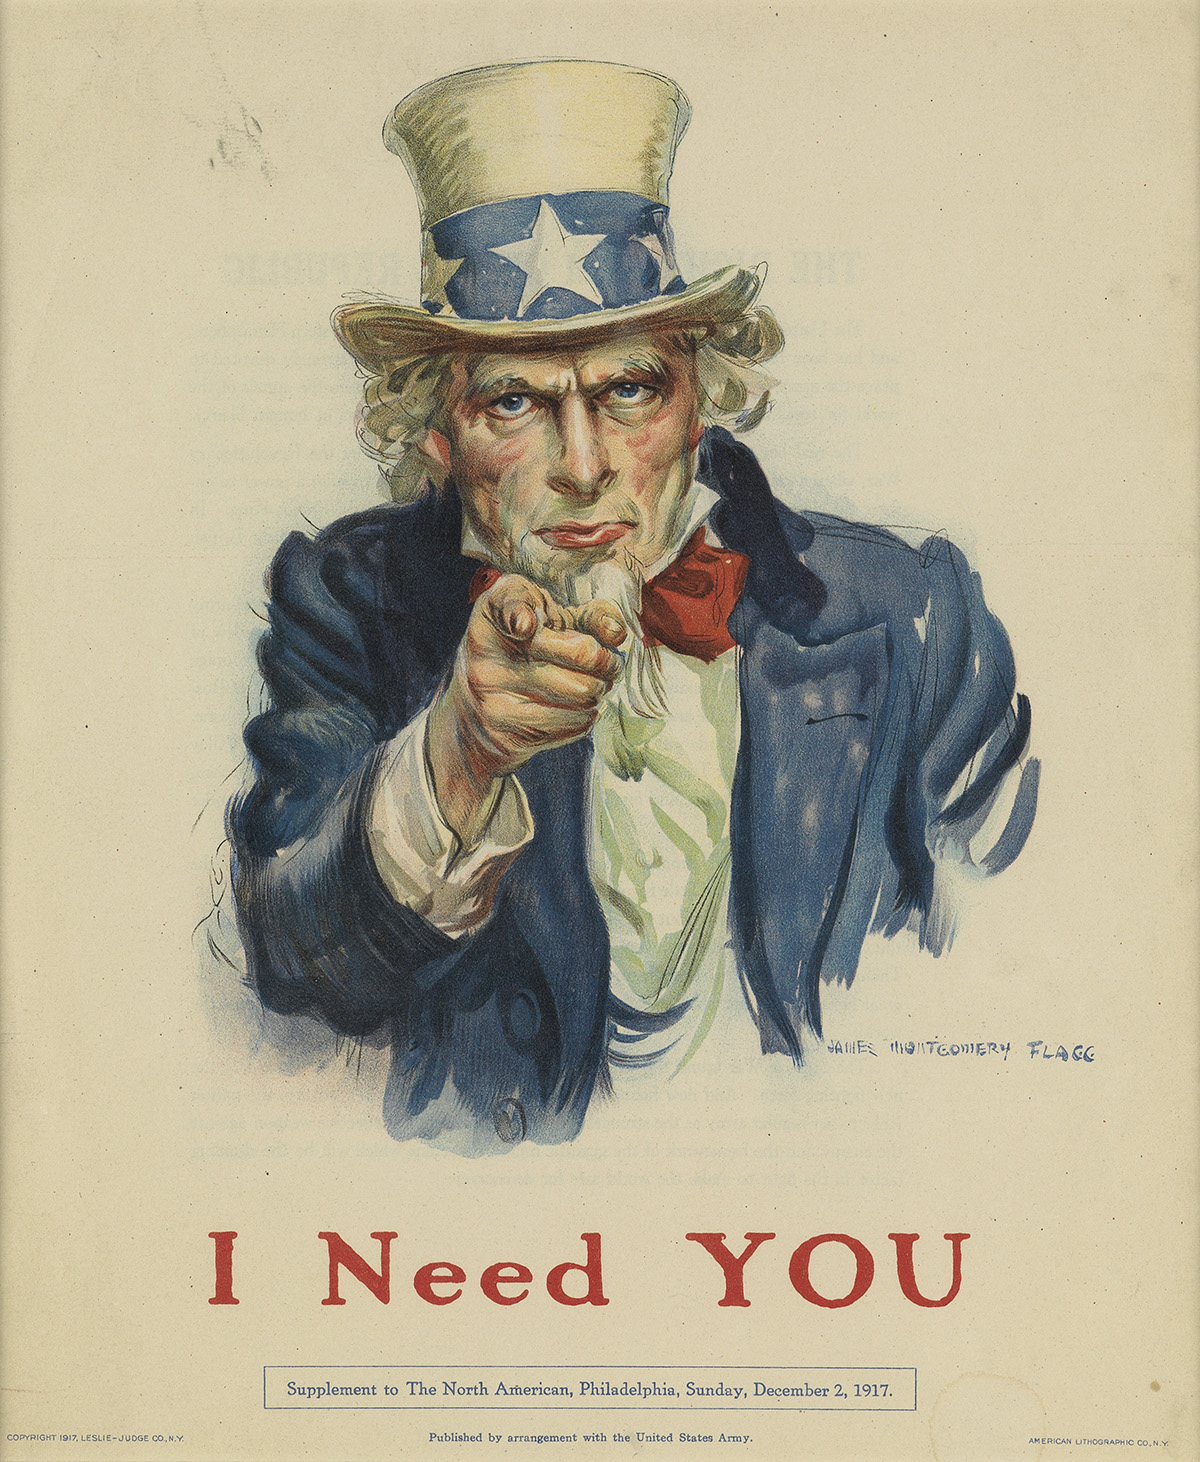 JAMES MONTGOMERY FLAGG (1870-1960). I NEED YOU. Magazine sheet. 1917. 11x9 inches, 29x24 cm. American Lithographic Co., NY.